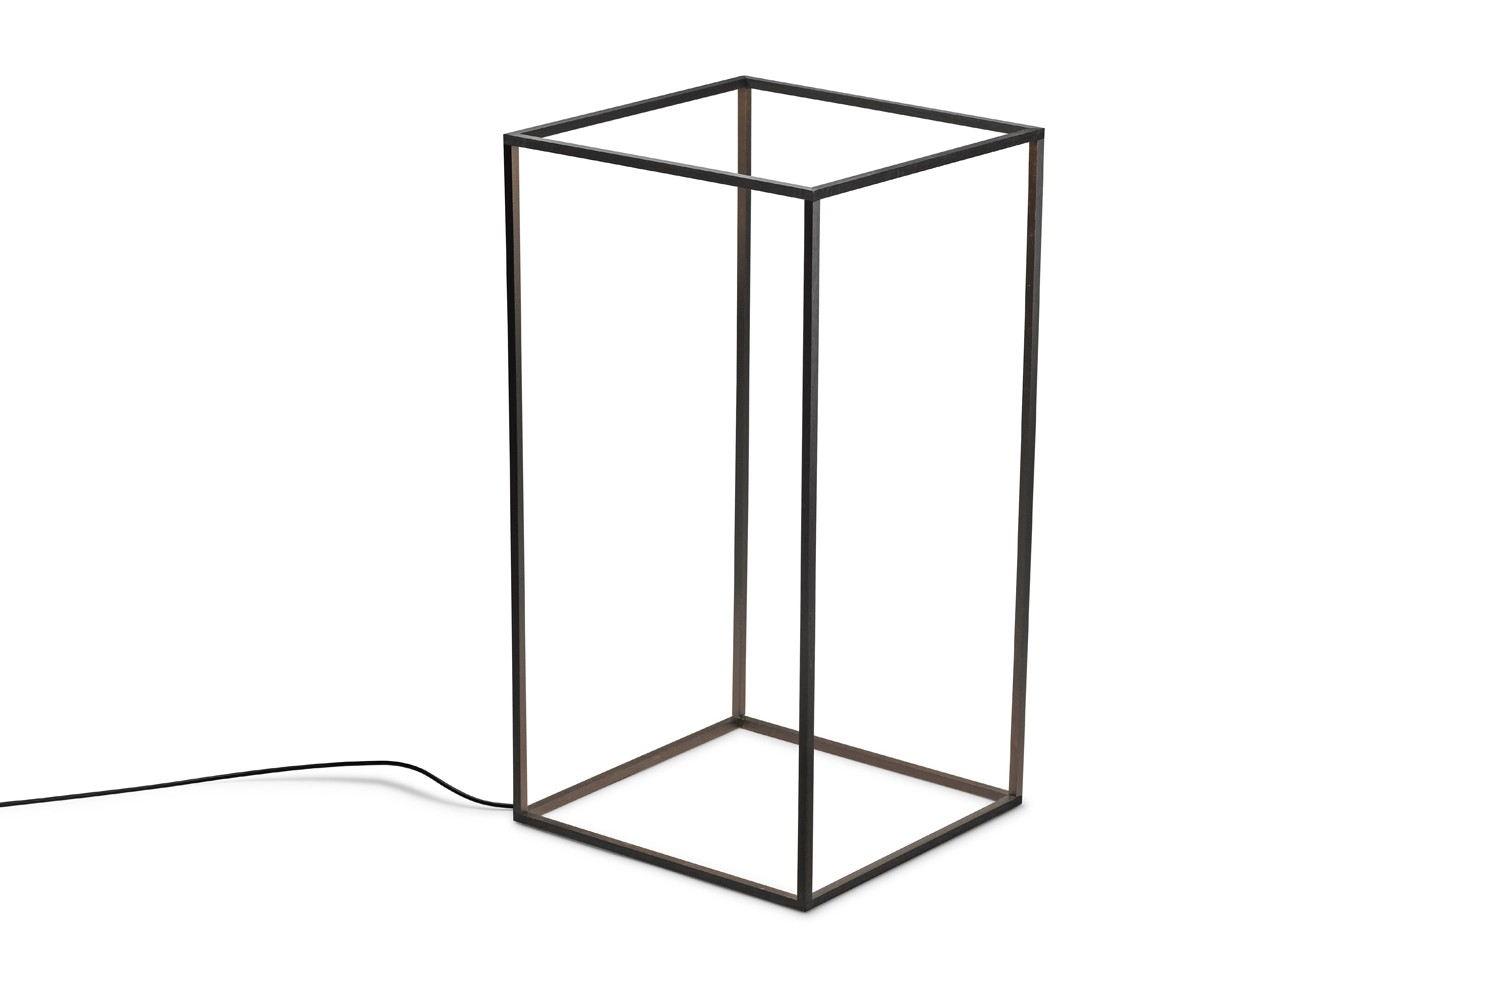 Ipnos Outdoor Floor Lamp Black Anodized